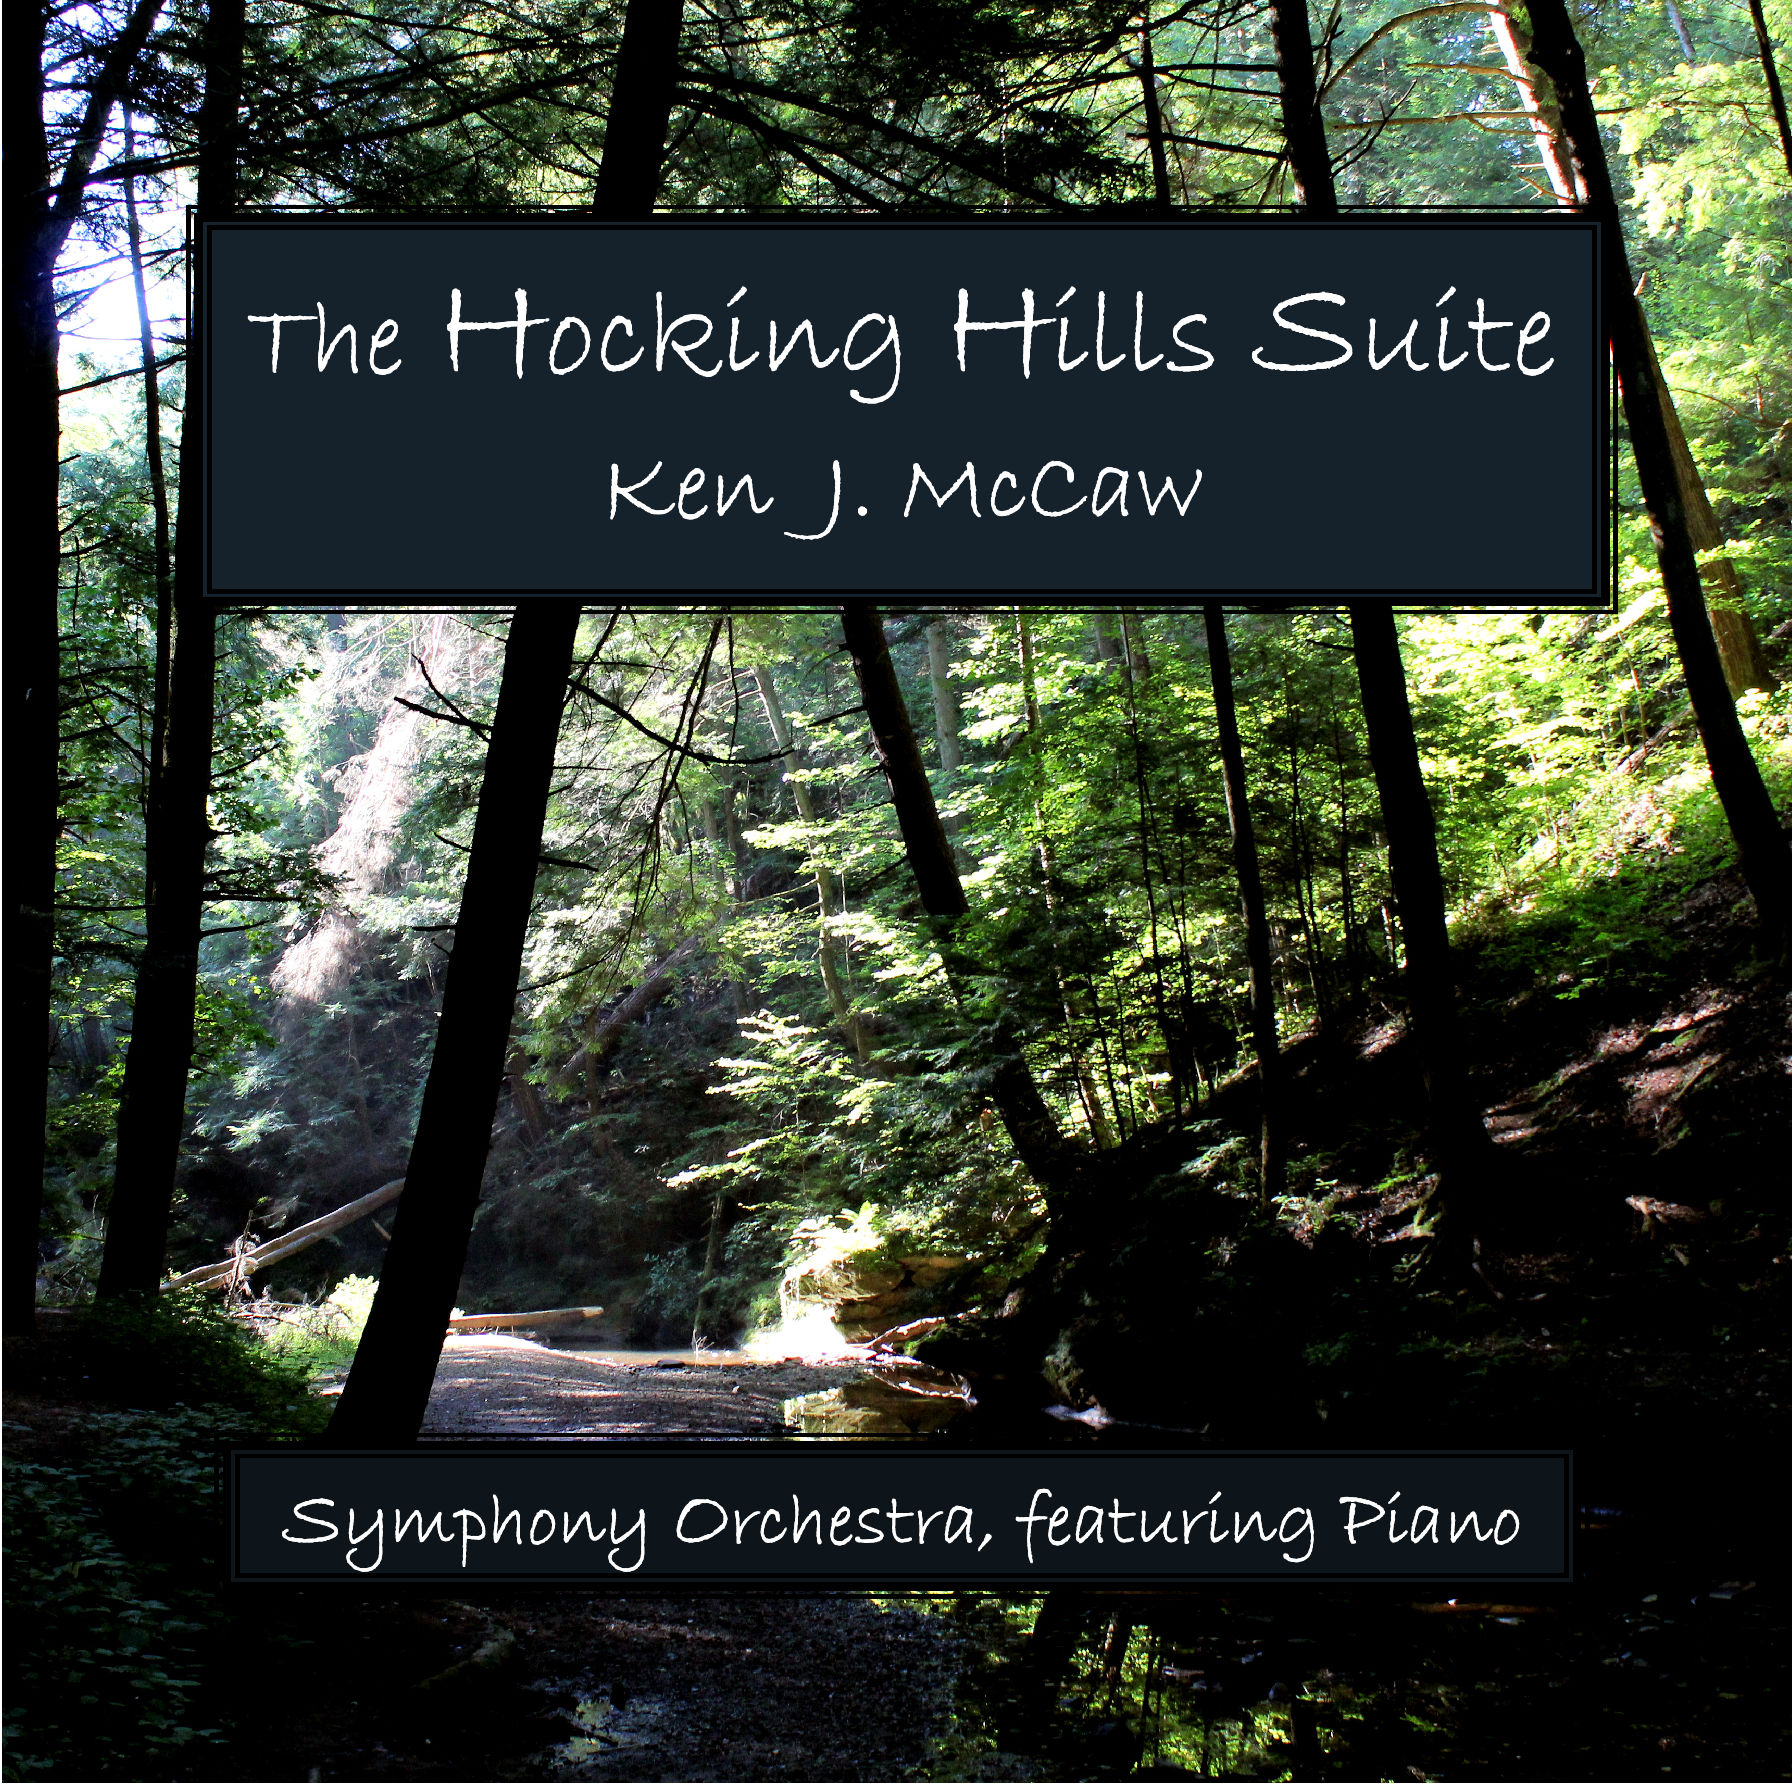 The Hocking Hills Suite CD